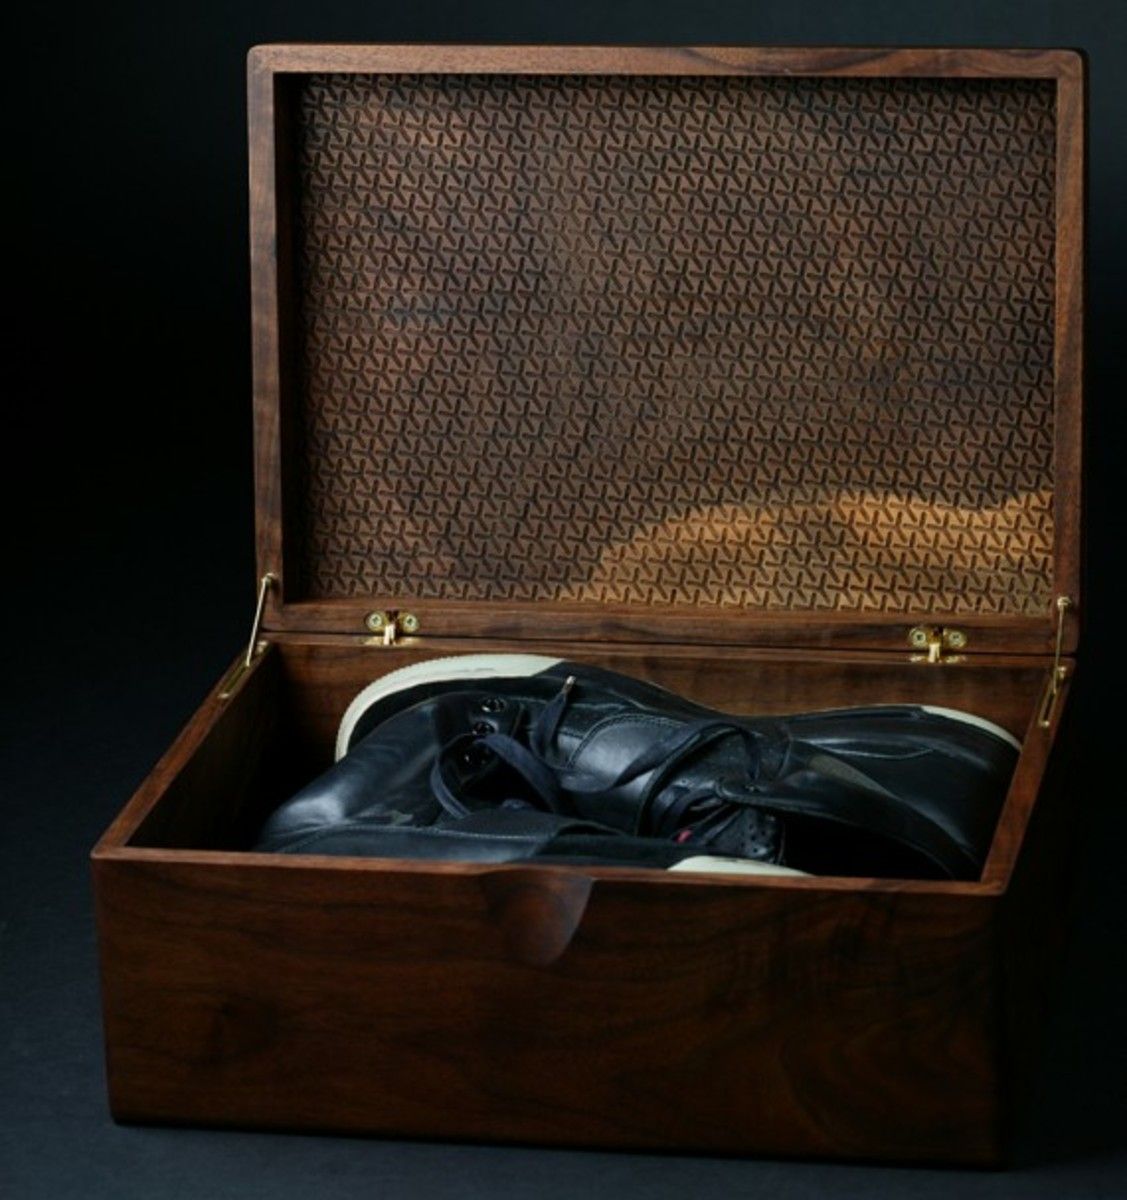 nike_air_yeezy_grammy_2